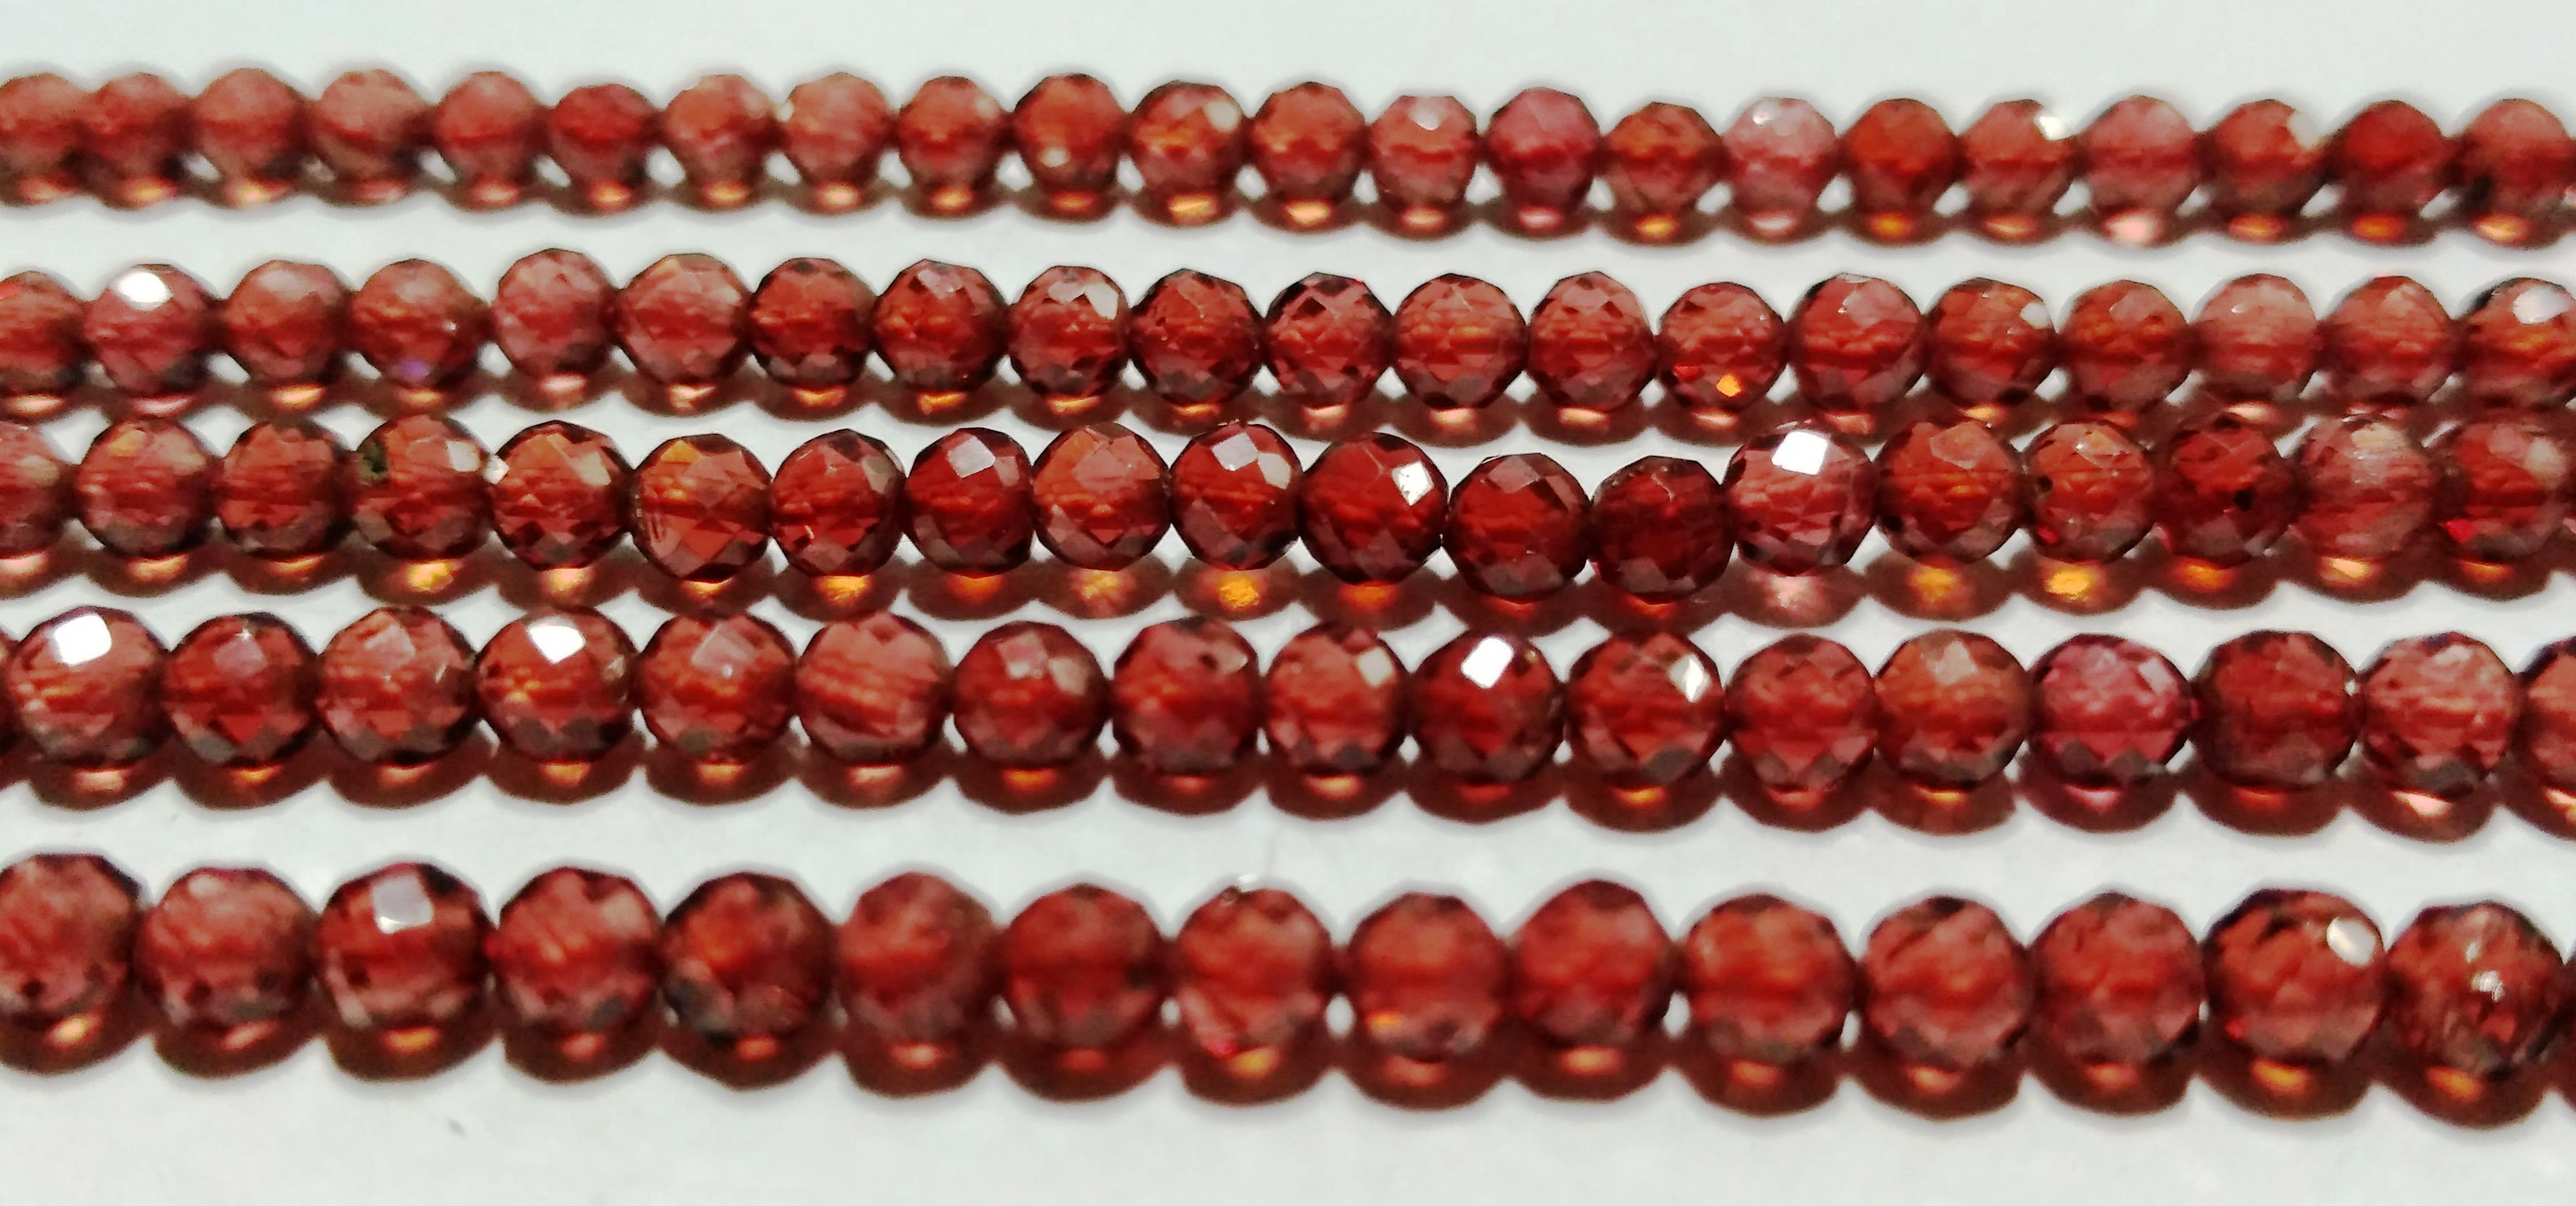 tibetan pendant with w stone wholesale bead beads product ohm mala carnelian prayer real serenity singing bowls tibet knotted dividers gemstone img